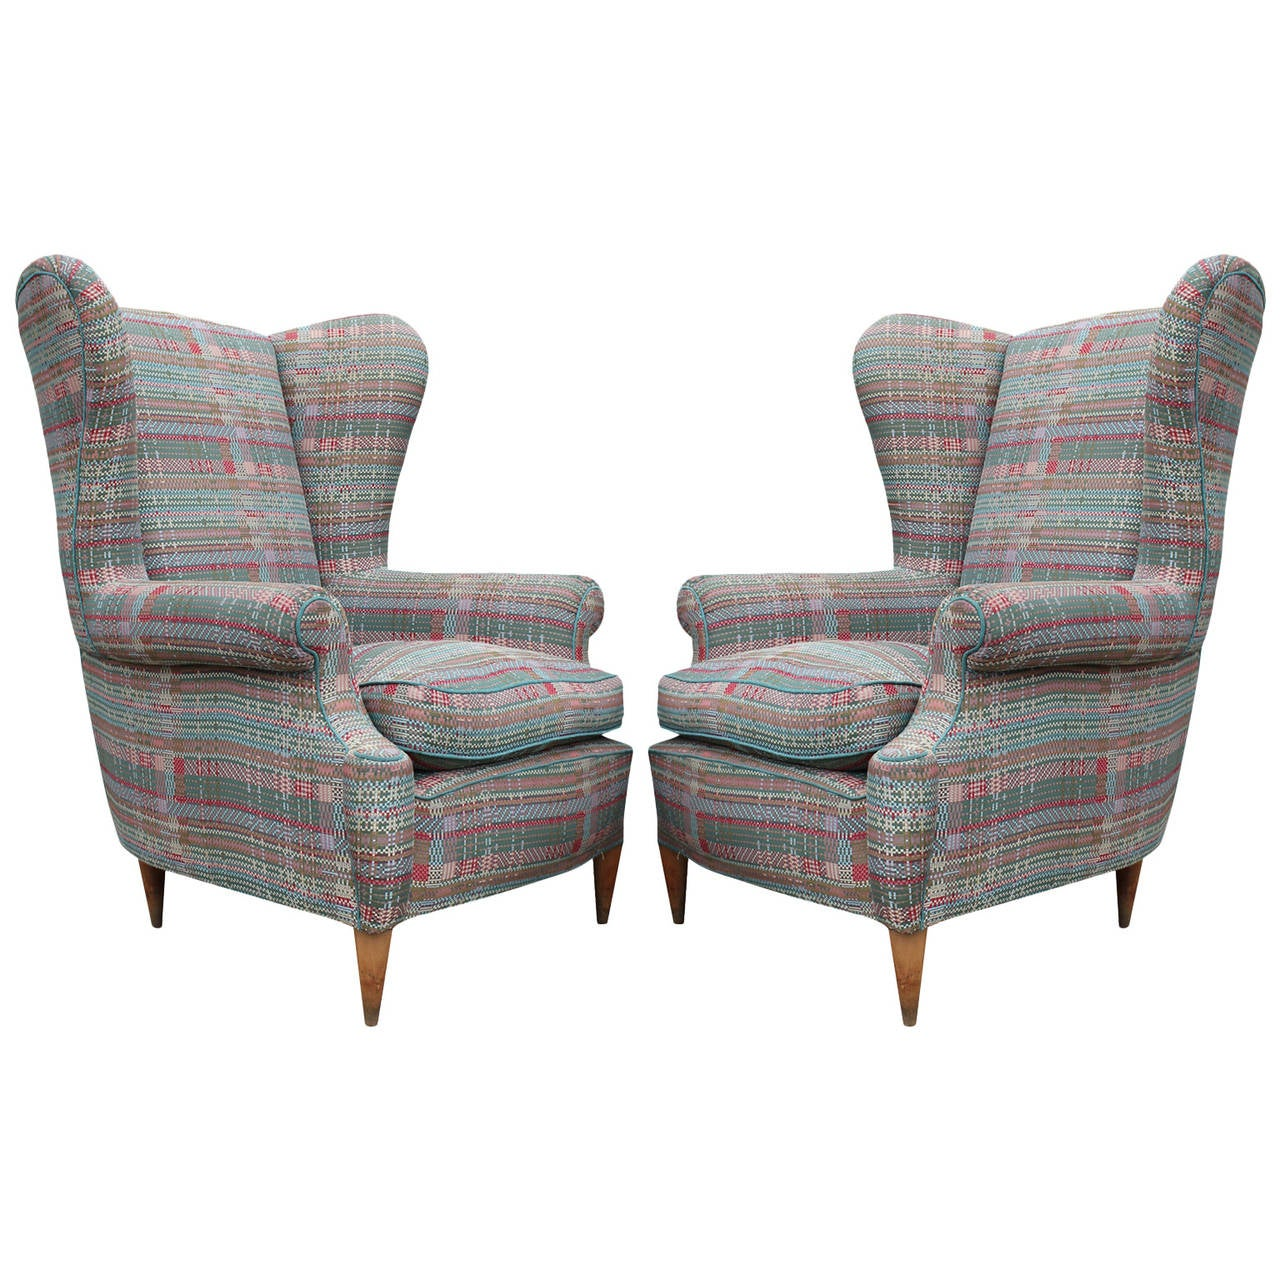 Gorgeous Pair of Mid-Century Modern Italian Wingback Lounge Chairs